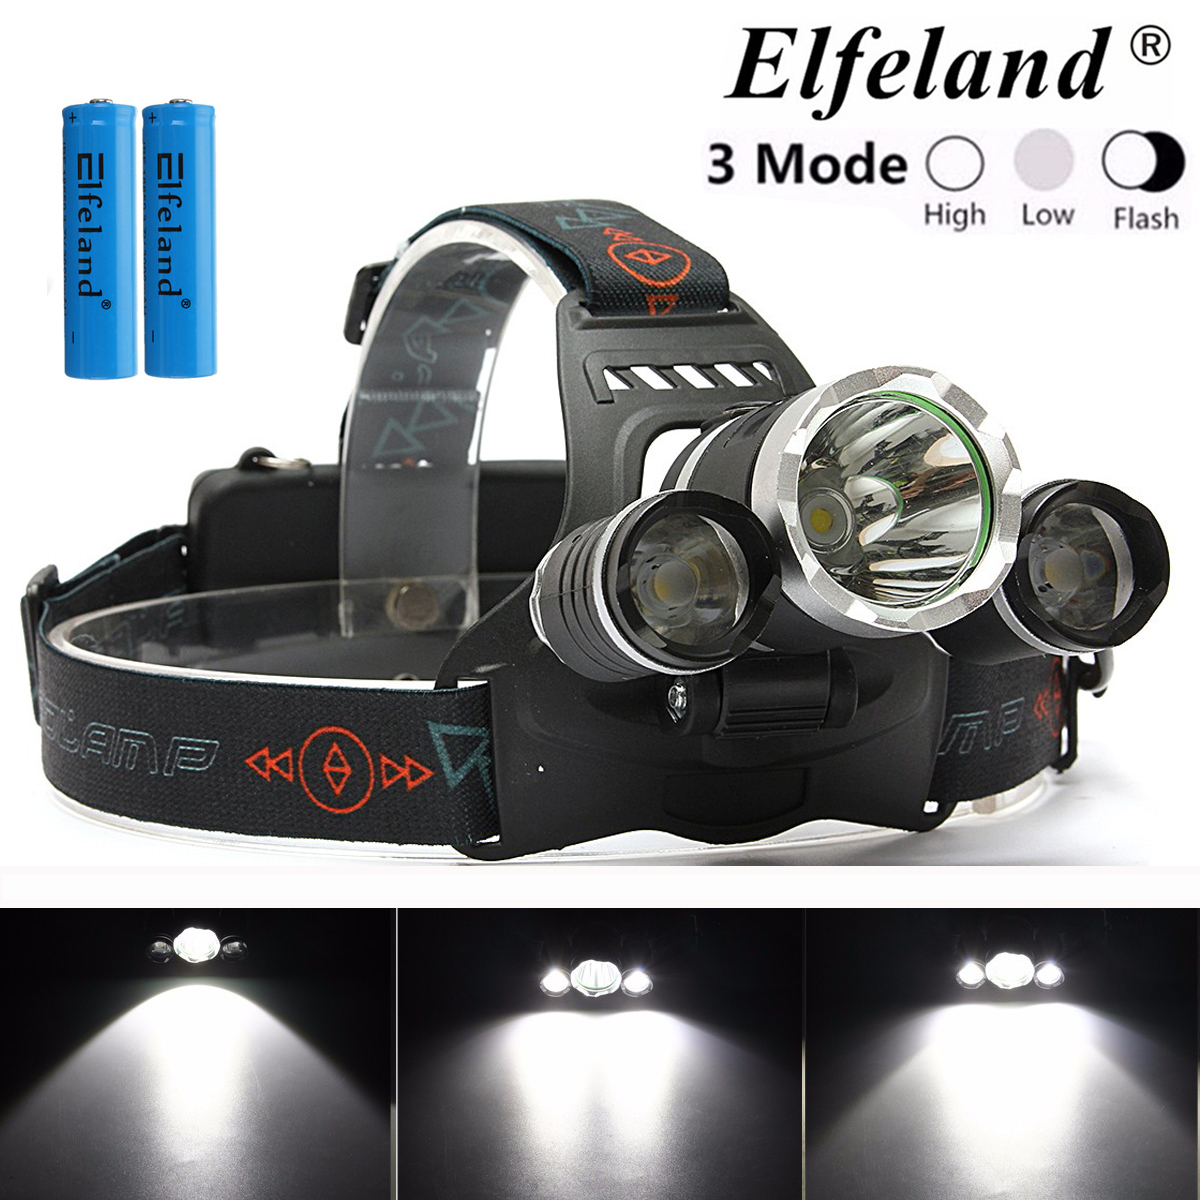 4500Lumens 3x T6 LED Headlight Headlamps Head Torch Lamp with 2Pcs 18650 Battery headight For Camping Hiking